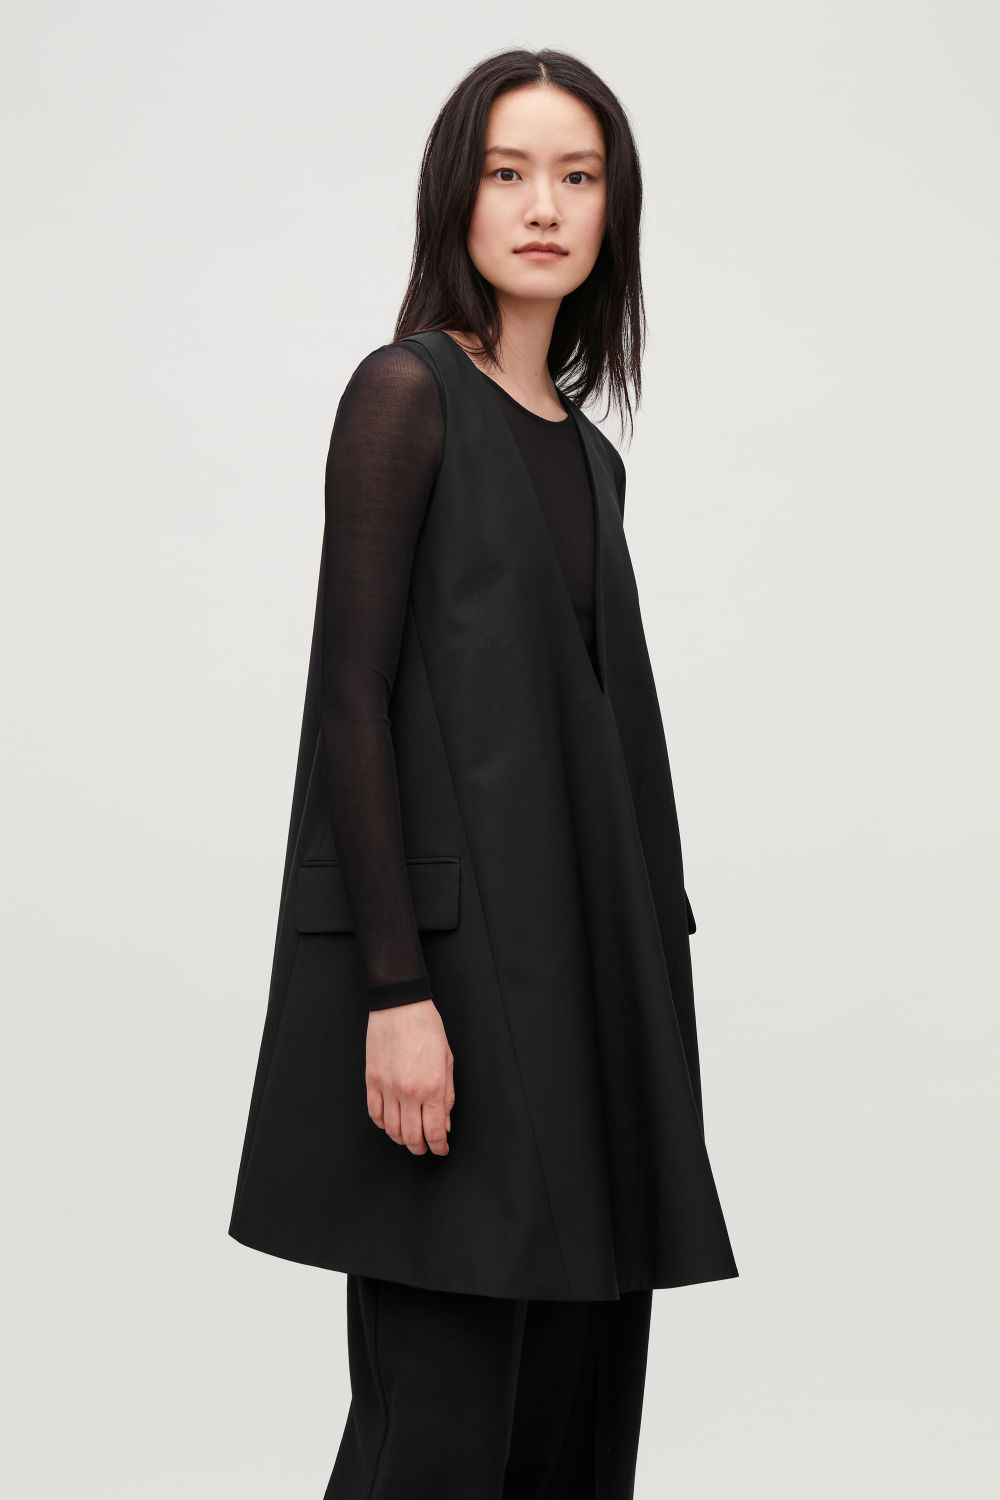 TAILORED WOOL A-LINE DRESS